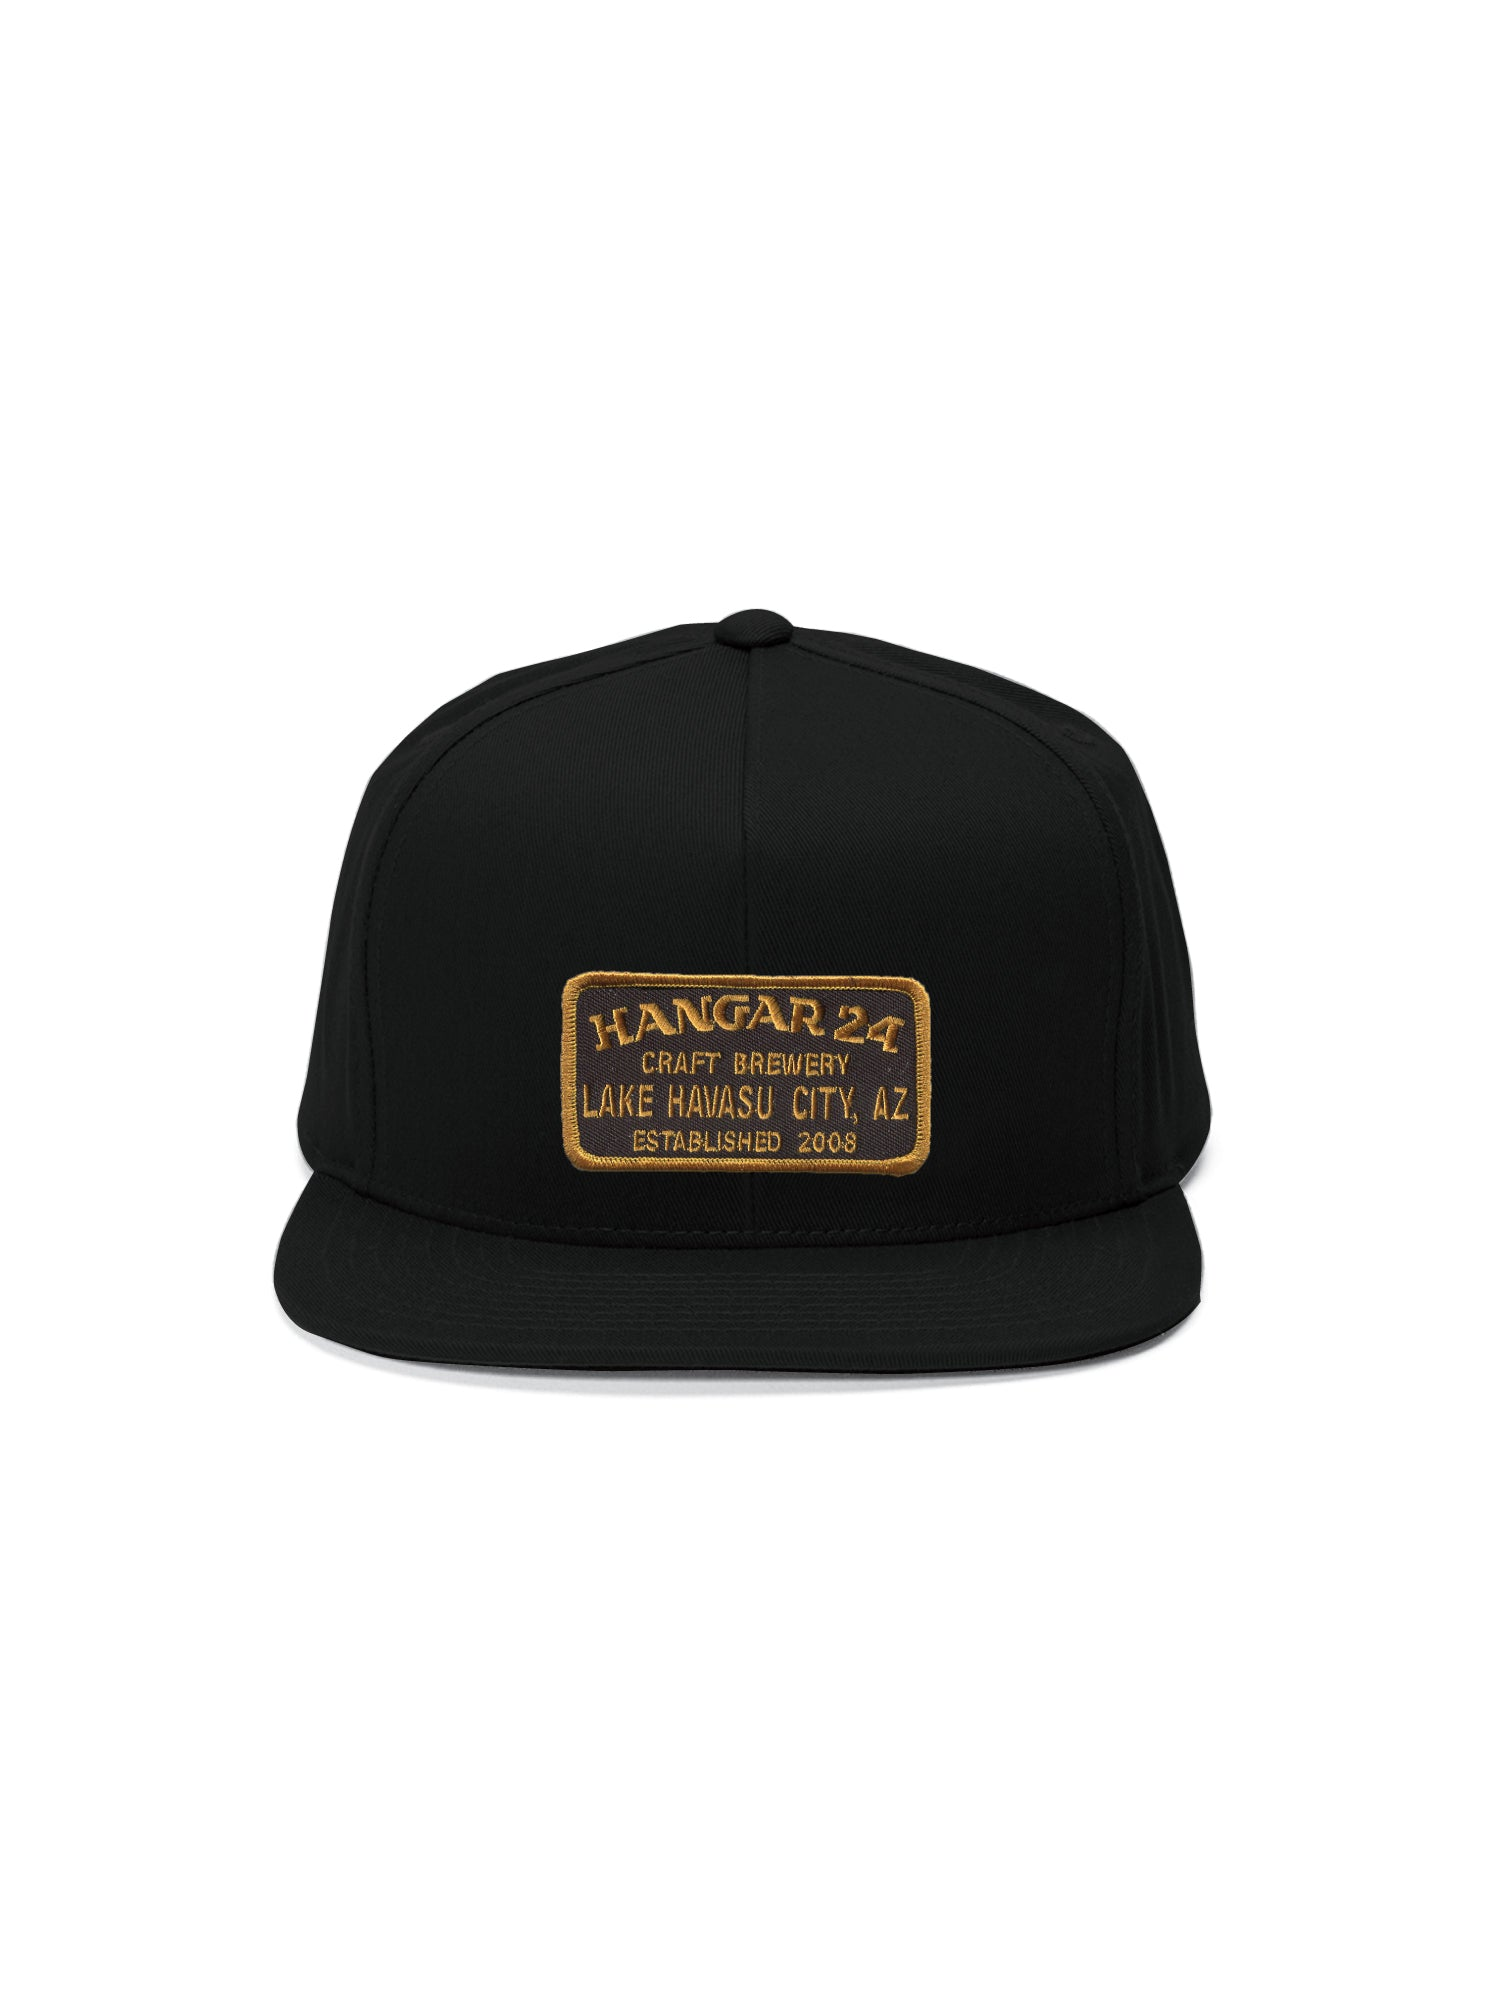 HANGAR 24 LAKE HAVASU CITY HAT- BLACK